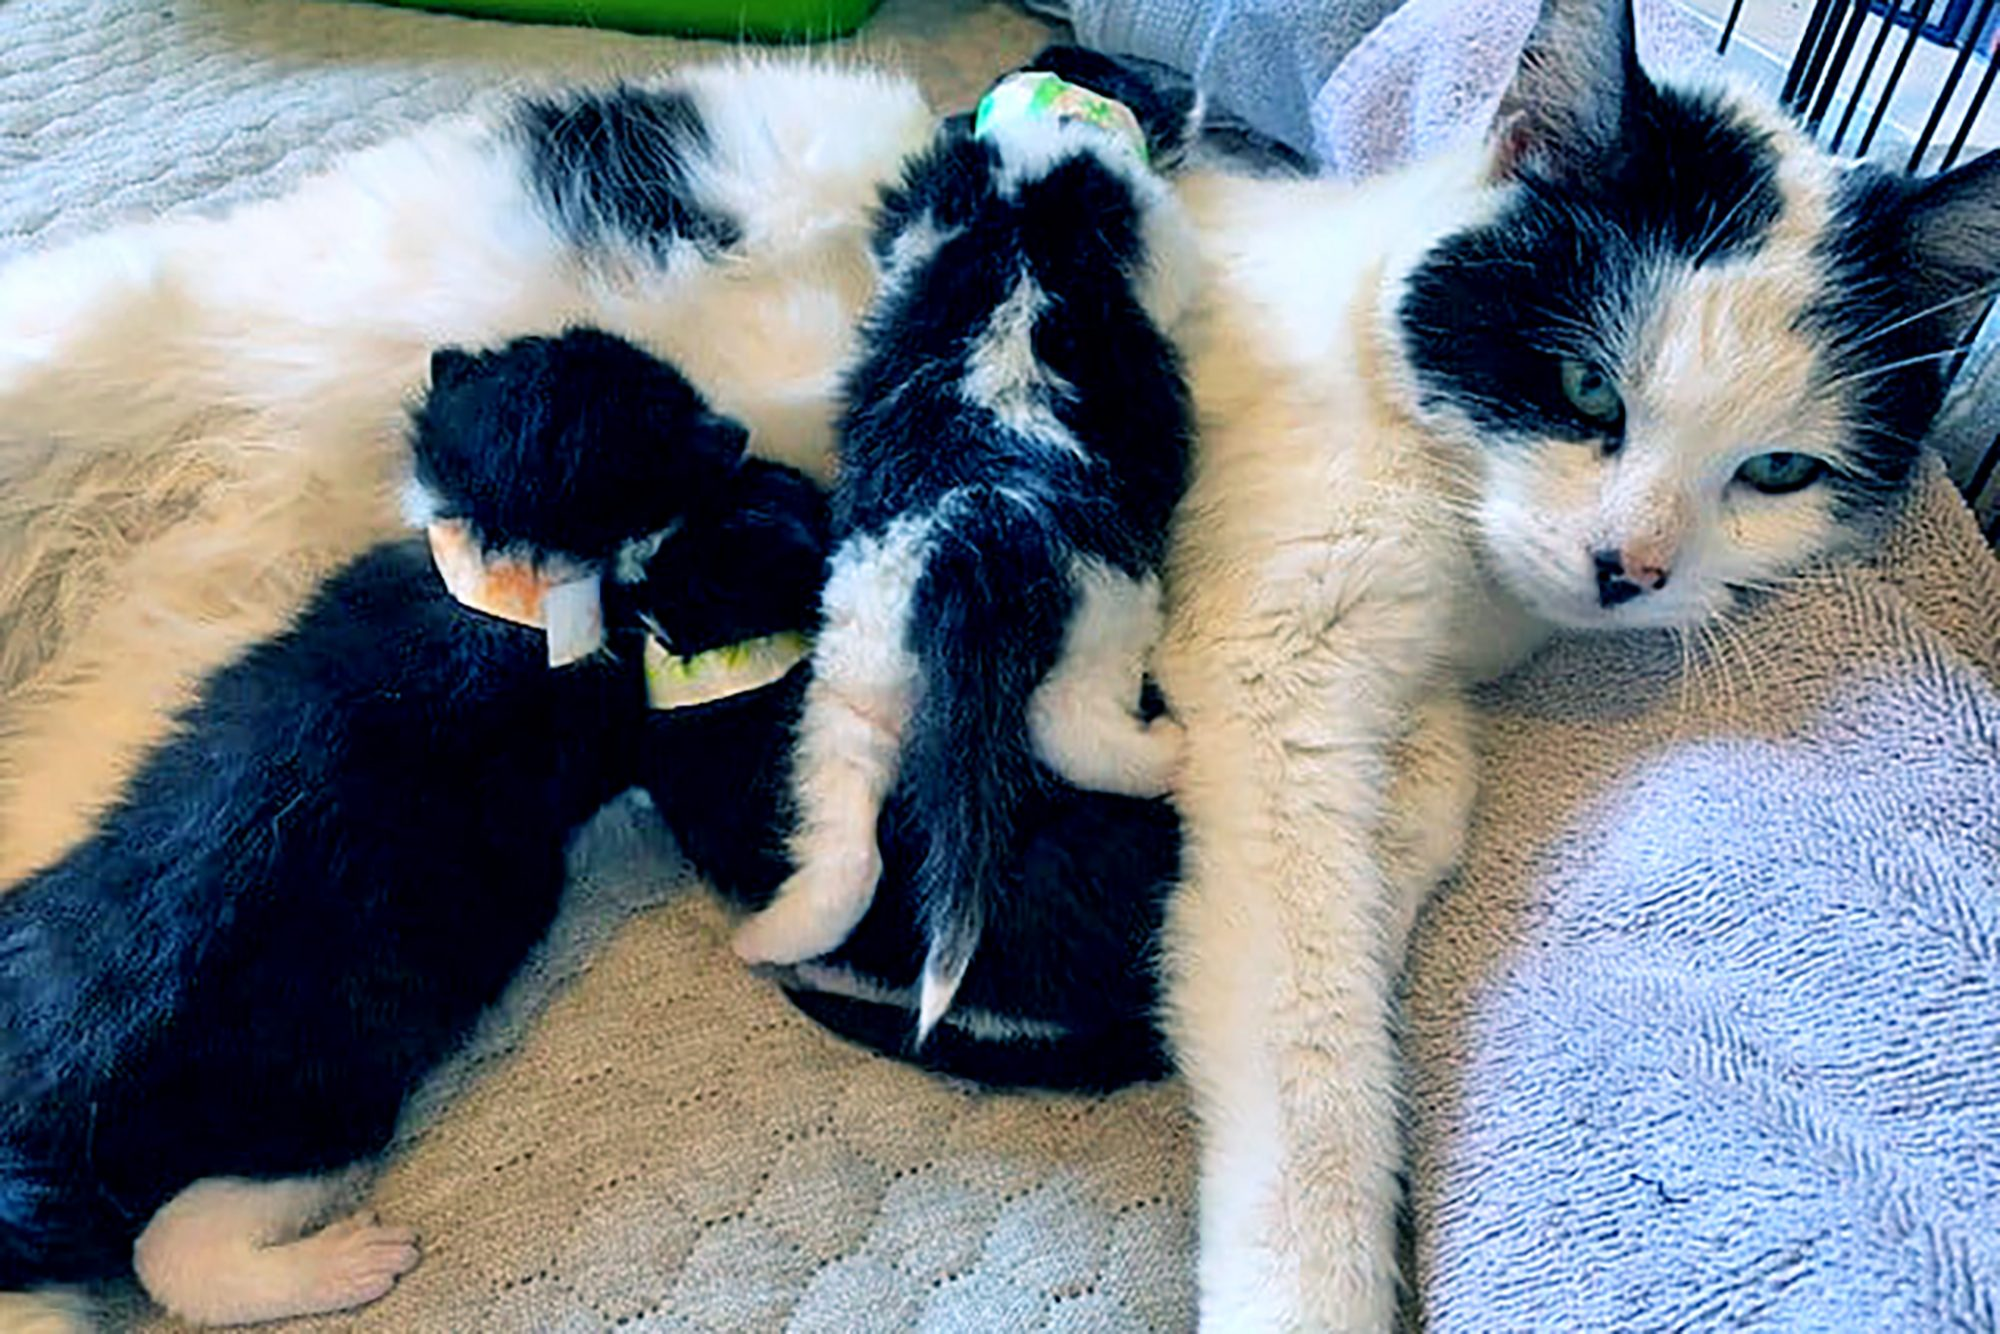 Black and white mama cat snuggling with her kittens